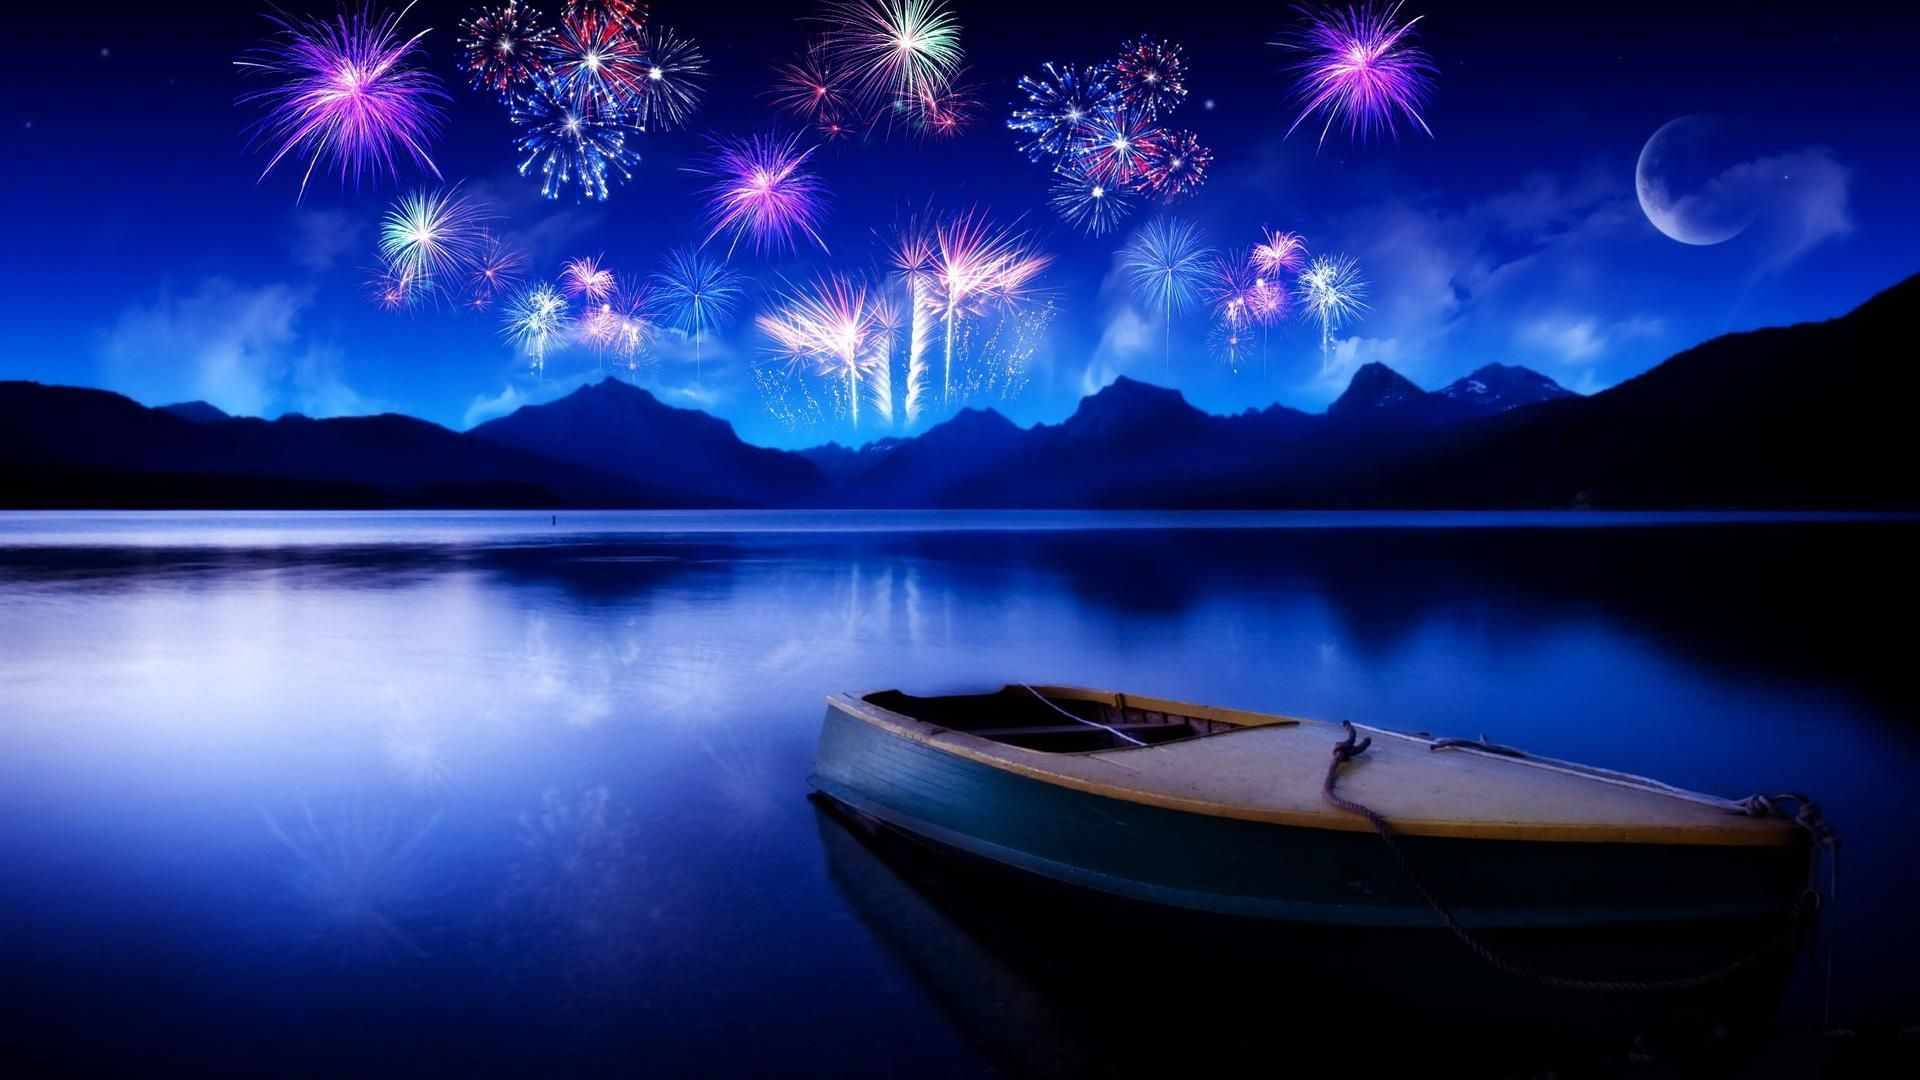 cool bright twilight fireworks lake desktop backgrounds widescreen and hd background wallpaper